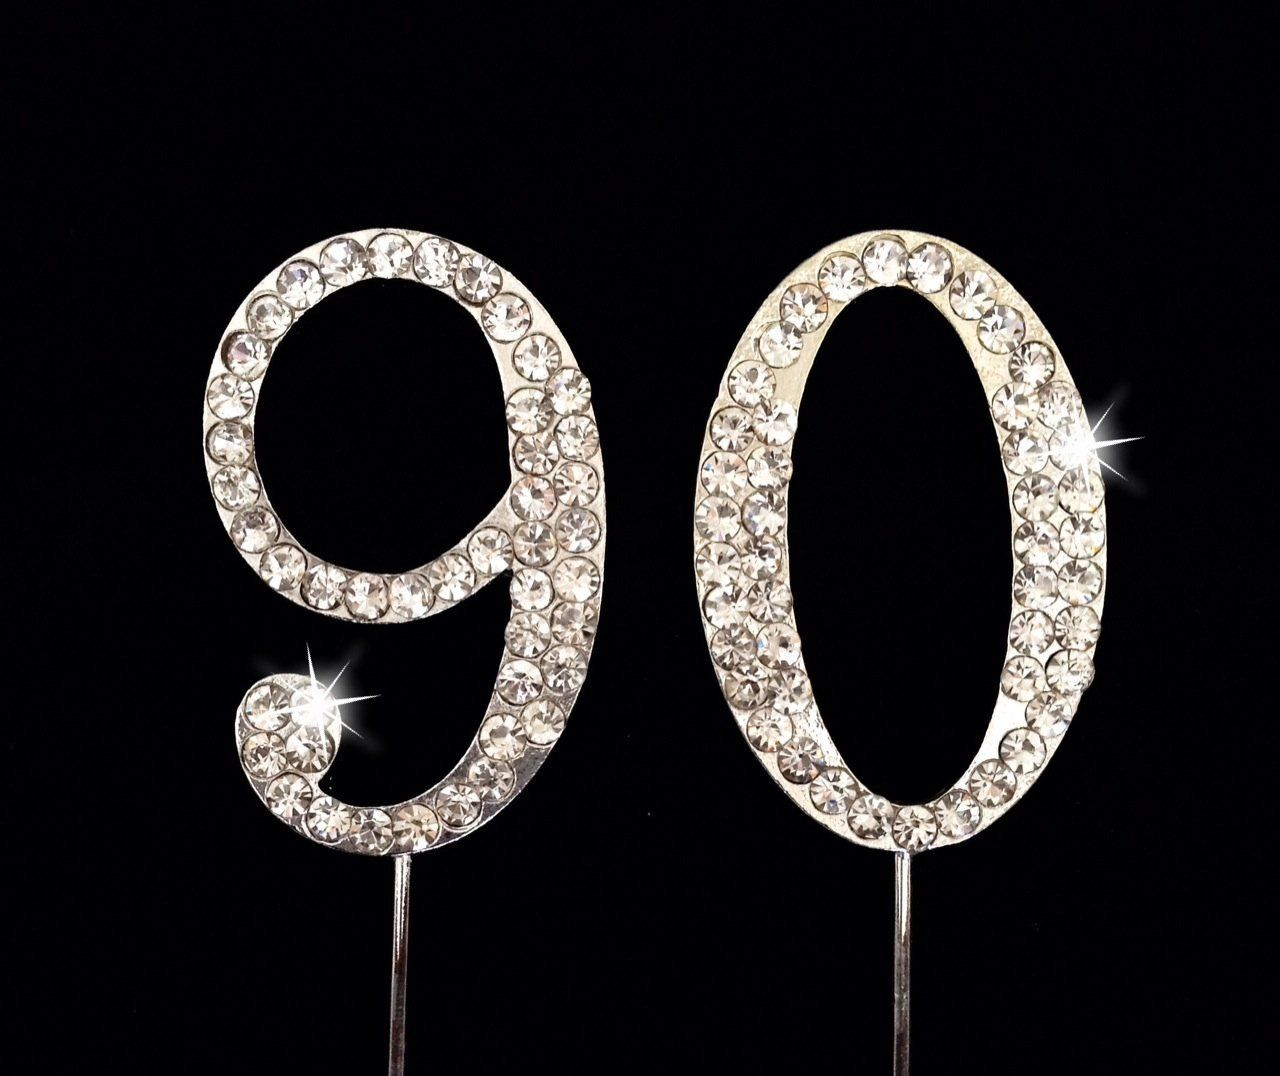 Amazon 90th Birthday Number Cake Topper With Sparkling Rhinestone Crystals